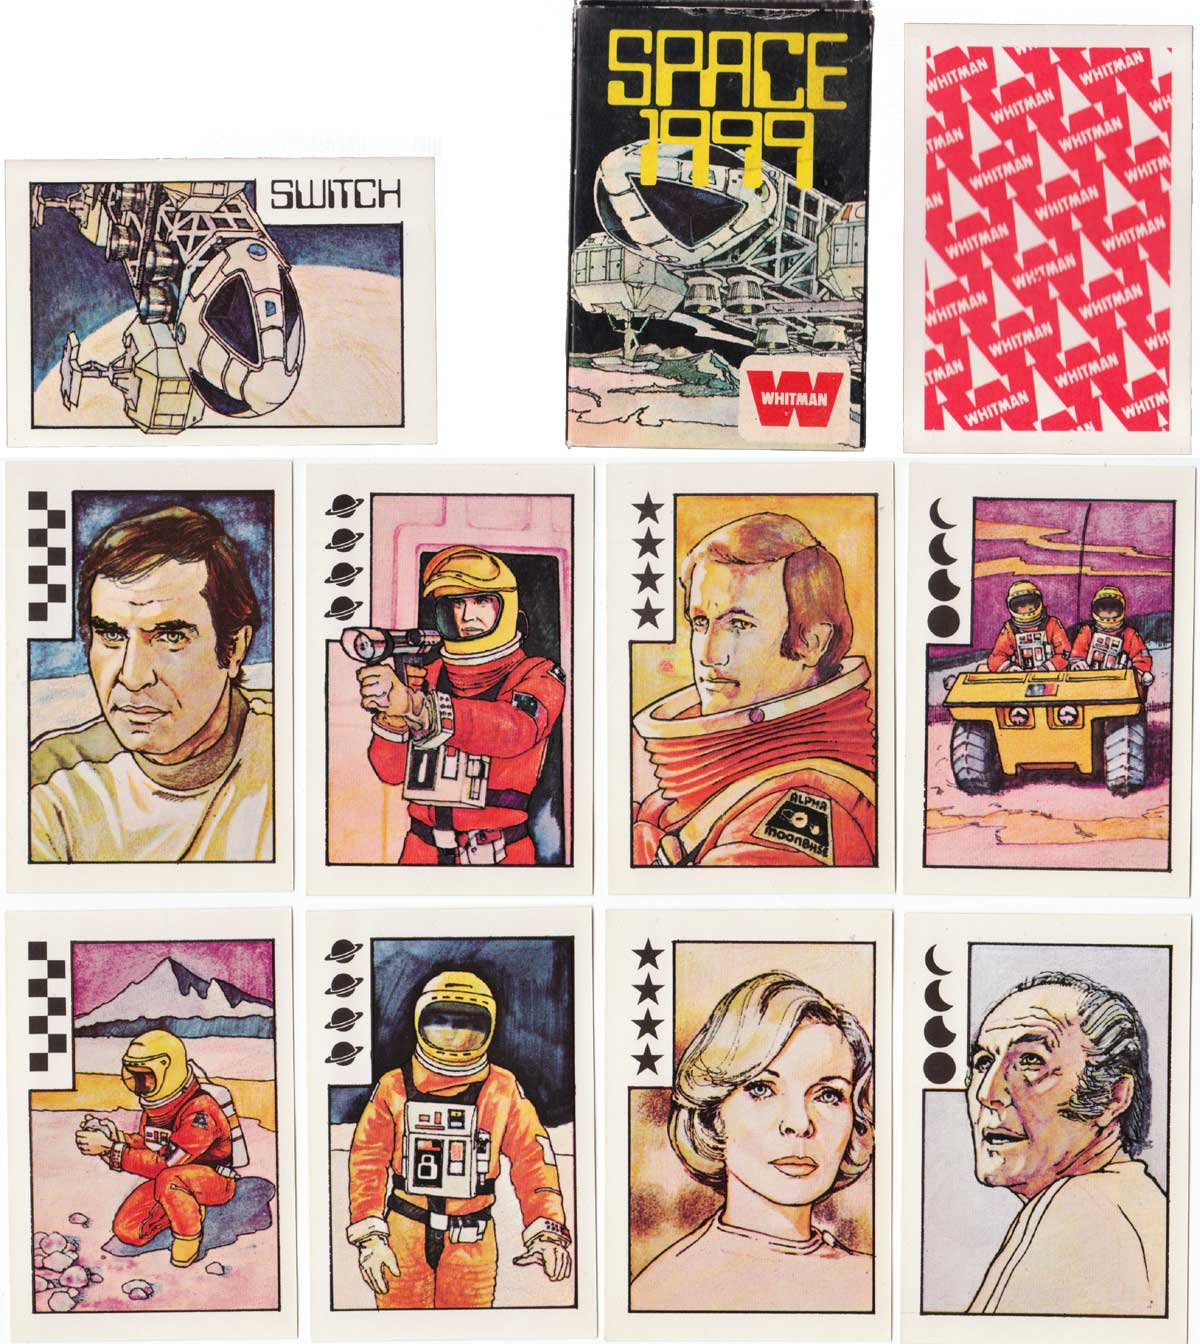 Space 1999, published by Whitman, 1978